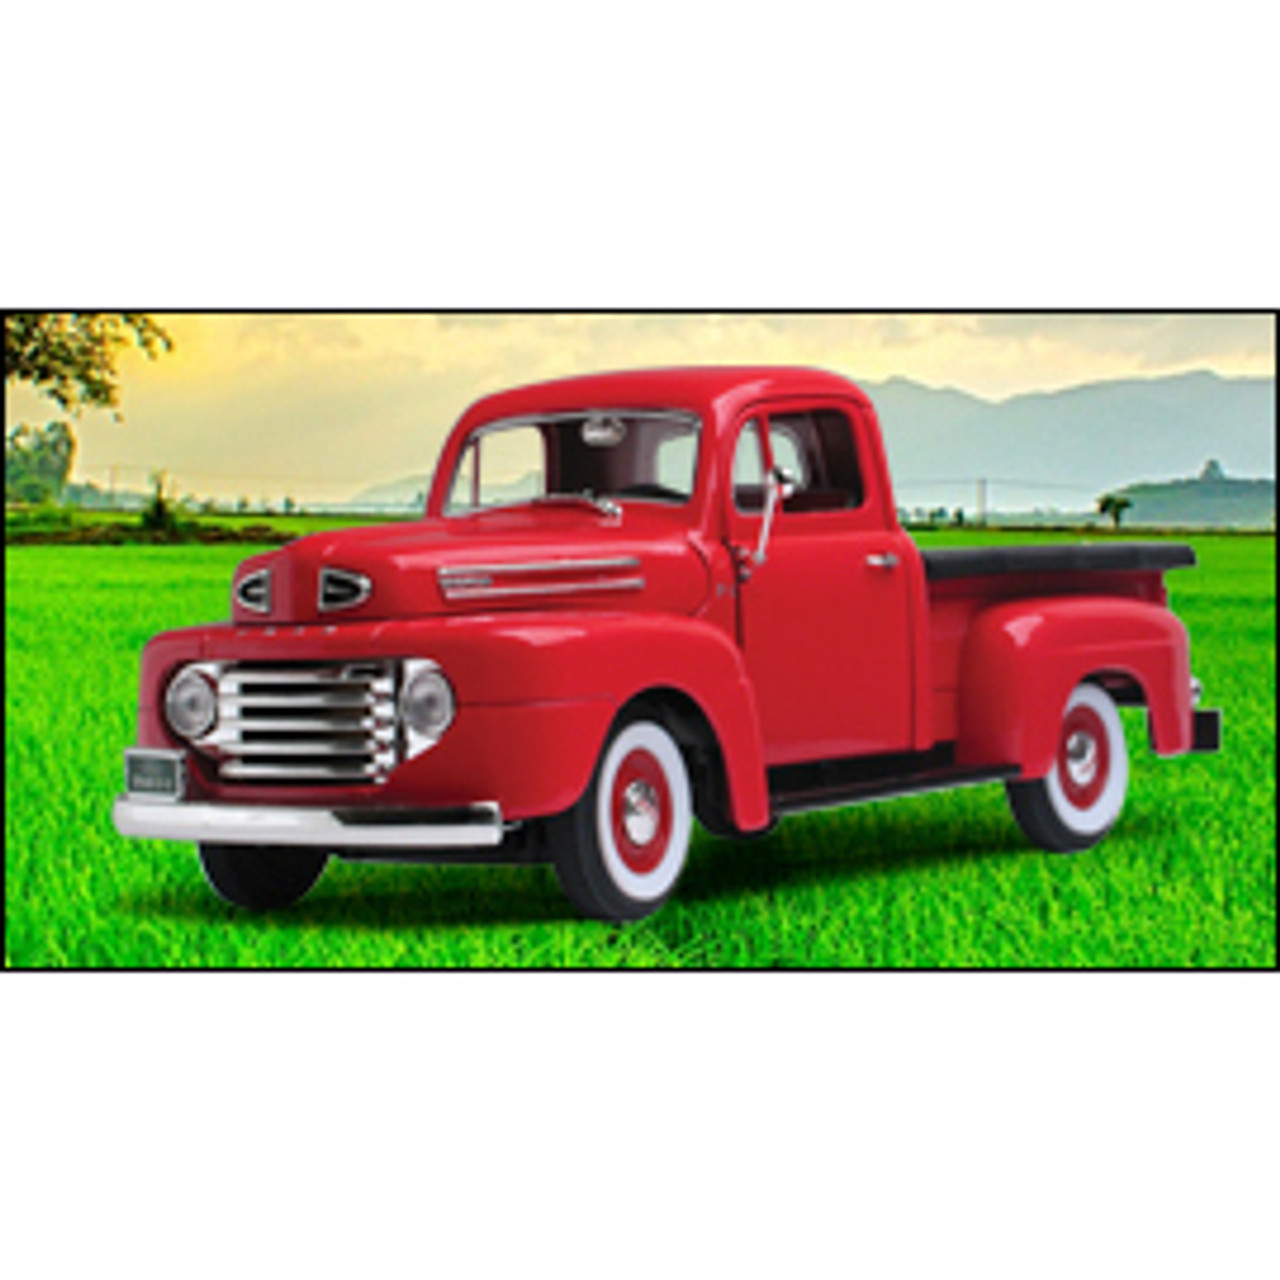 Collectible Diecast Trucks Replicas | Fairfield Collectibles